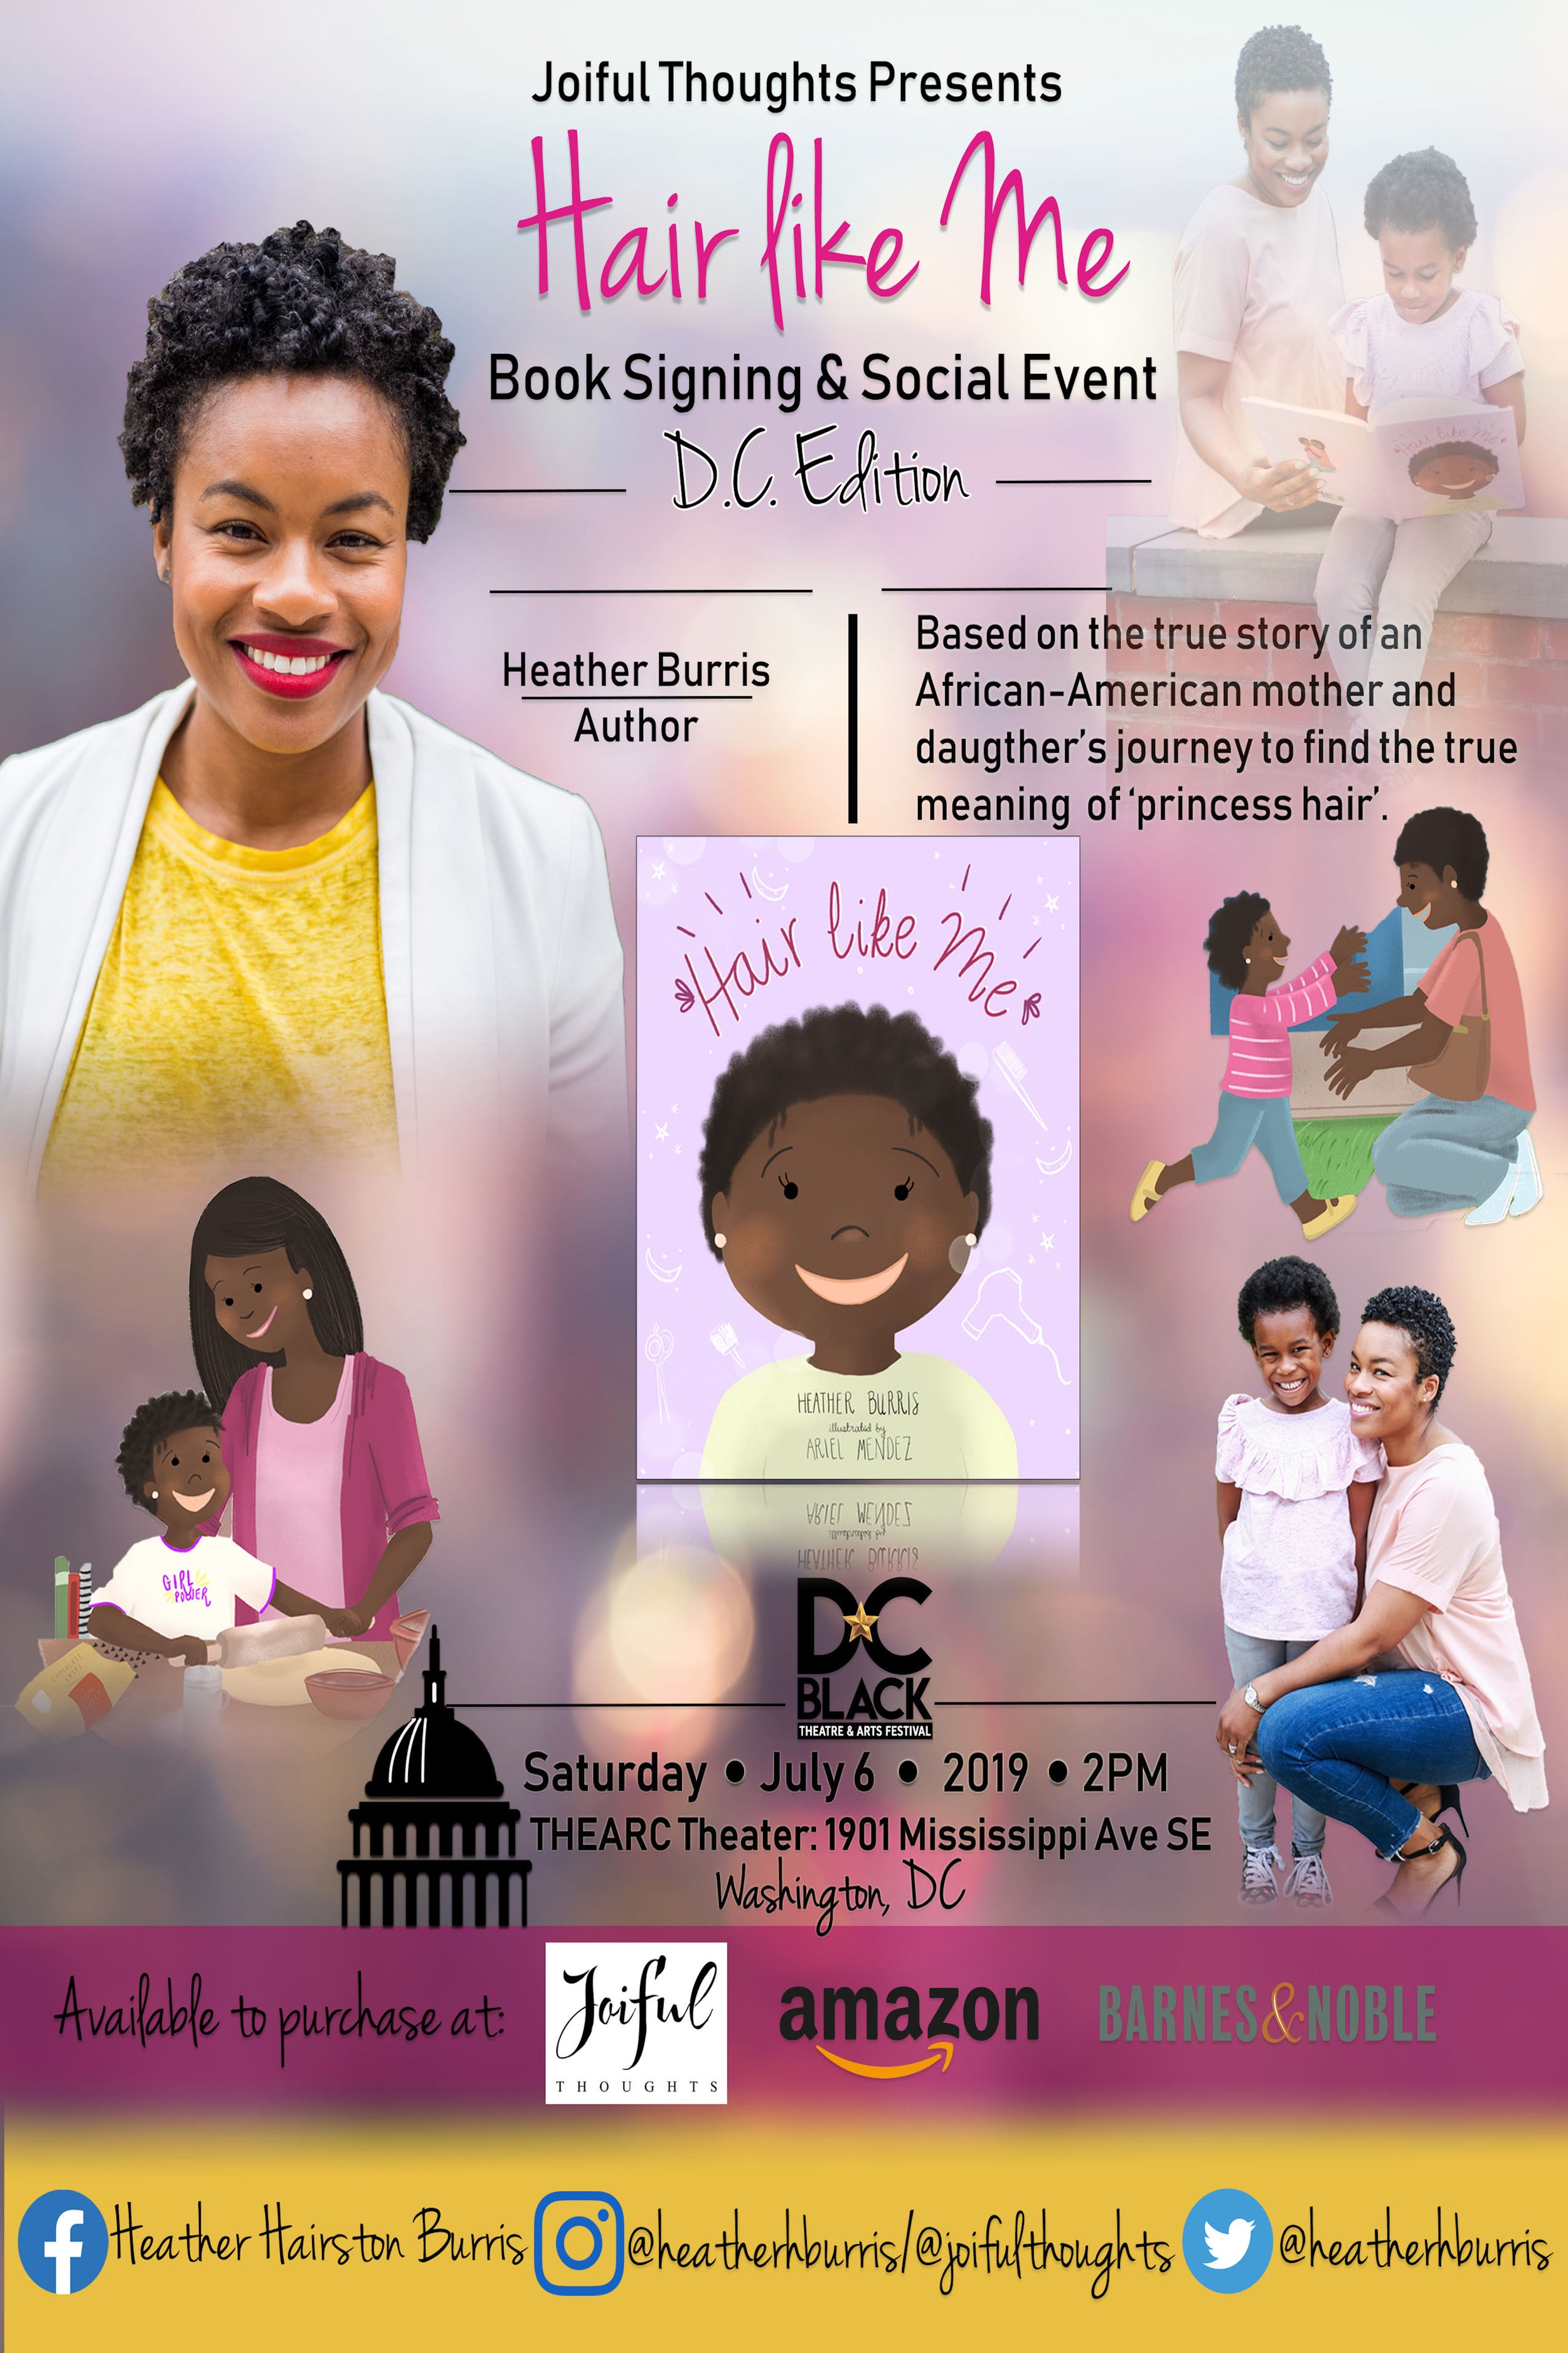 Hair Like Me Events - 7/6/19 Washington DC- DC Black Theatre Arts Festival @THEARC7/24 Los Angeles- Storytime at Little Play Society7/27 Seattle area- Discussion at Boon Boona Coffee8/10 Atlanta- Buzz Coffee & Winehouse9/7 Washington DC- Storytime at East City Bookshop9/21 Washington DC- Storytime at CAMPSpace10/5 Washington DC- East of the River Book Festival10/12 Washington DC- Howard University Homecoming- Howard U Bookstore